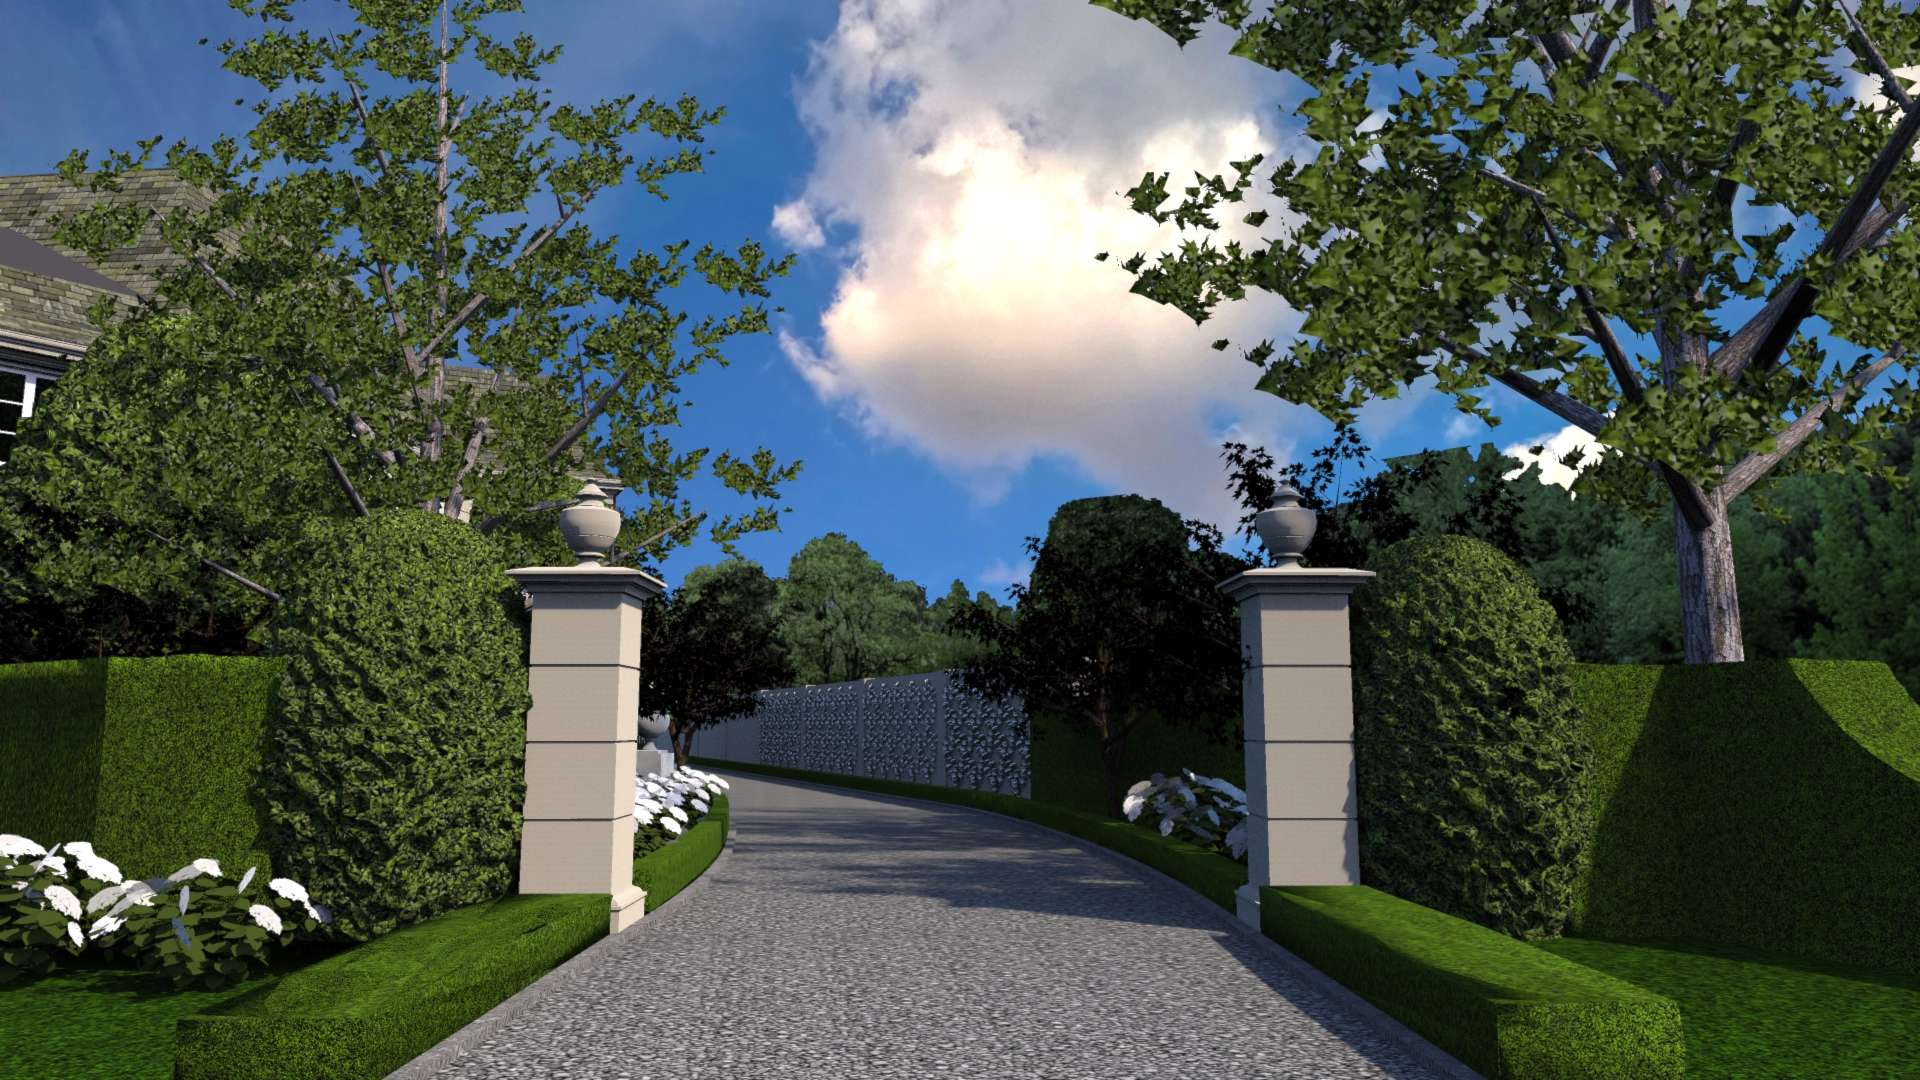 Indiana limestone columns support ornamental iron gates that provide seperation and privacy between the public driveway and private motor court and garage. The columns are topped with antique stone urn finials.